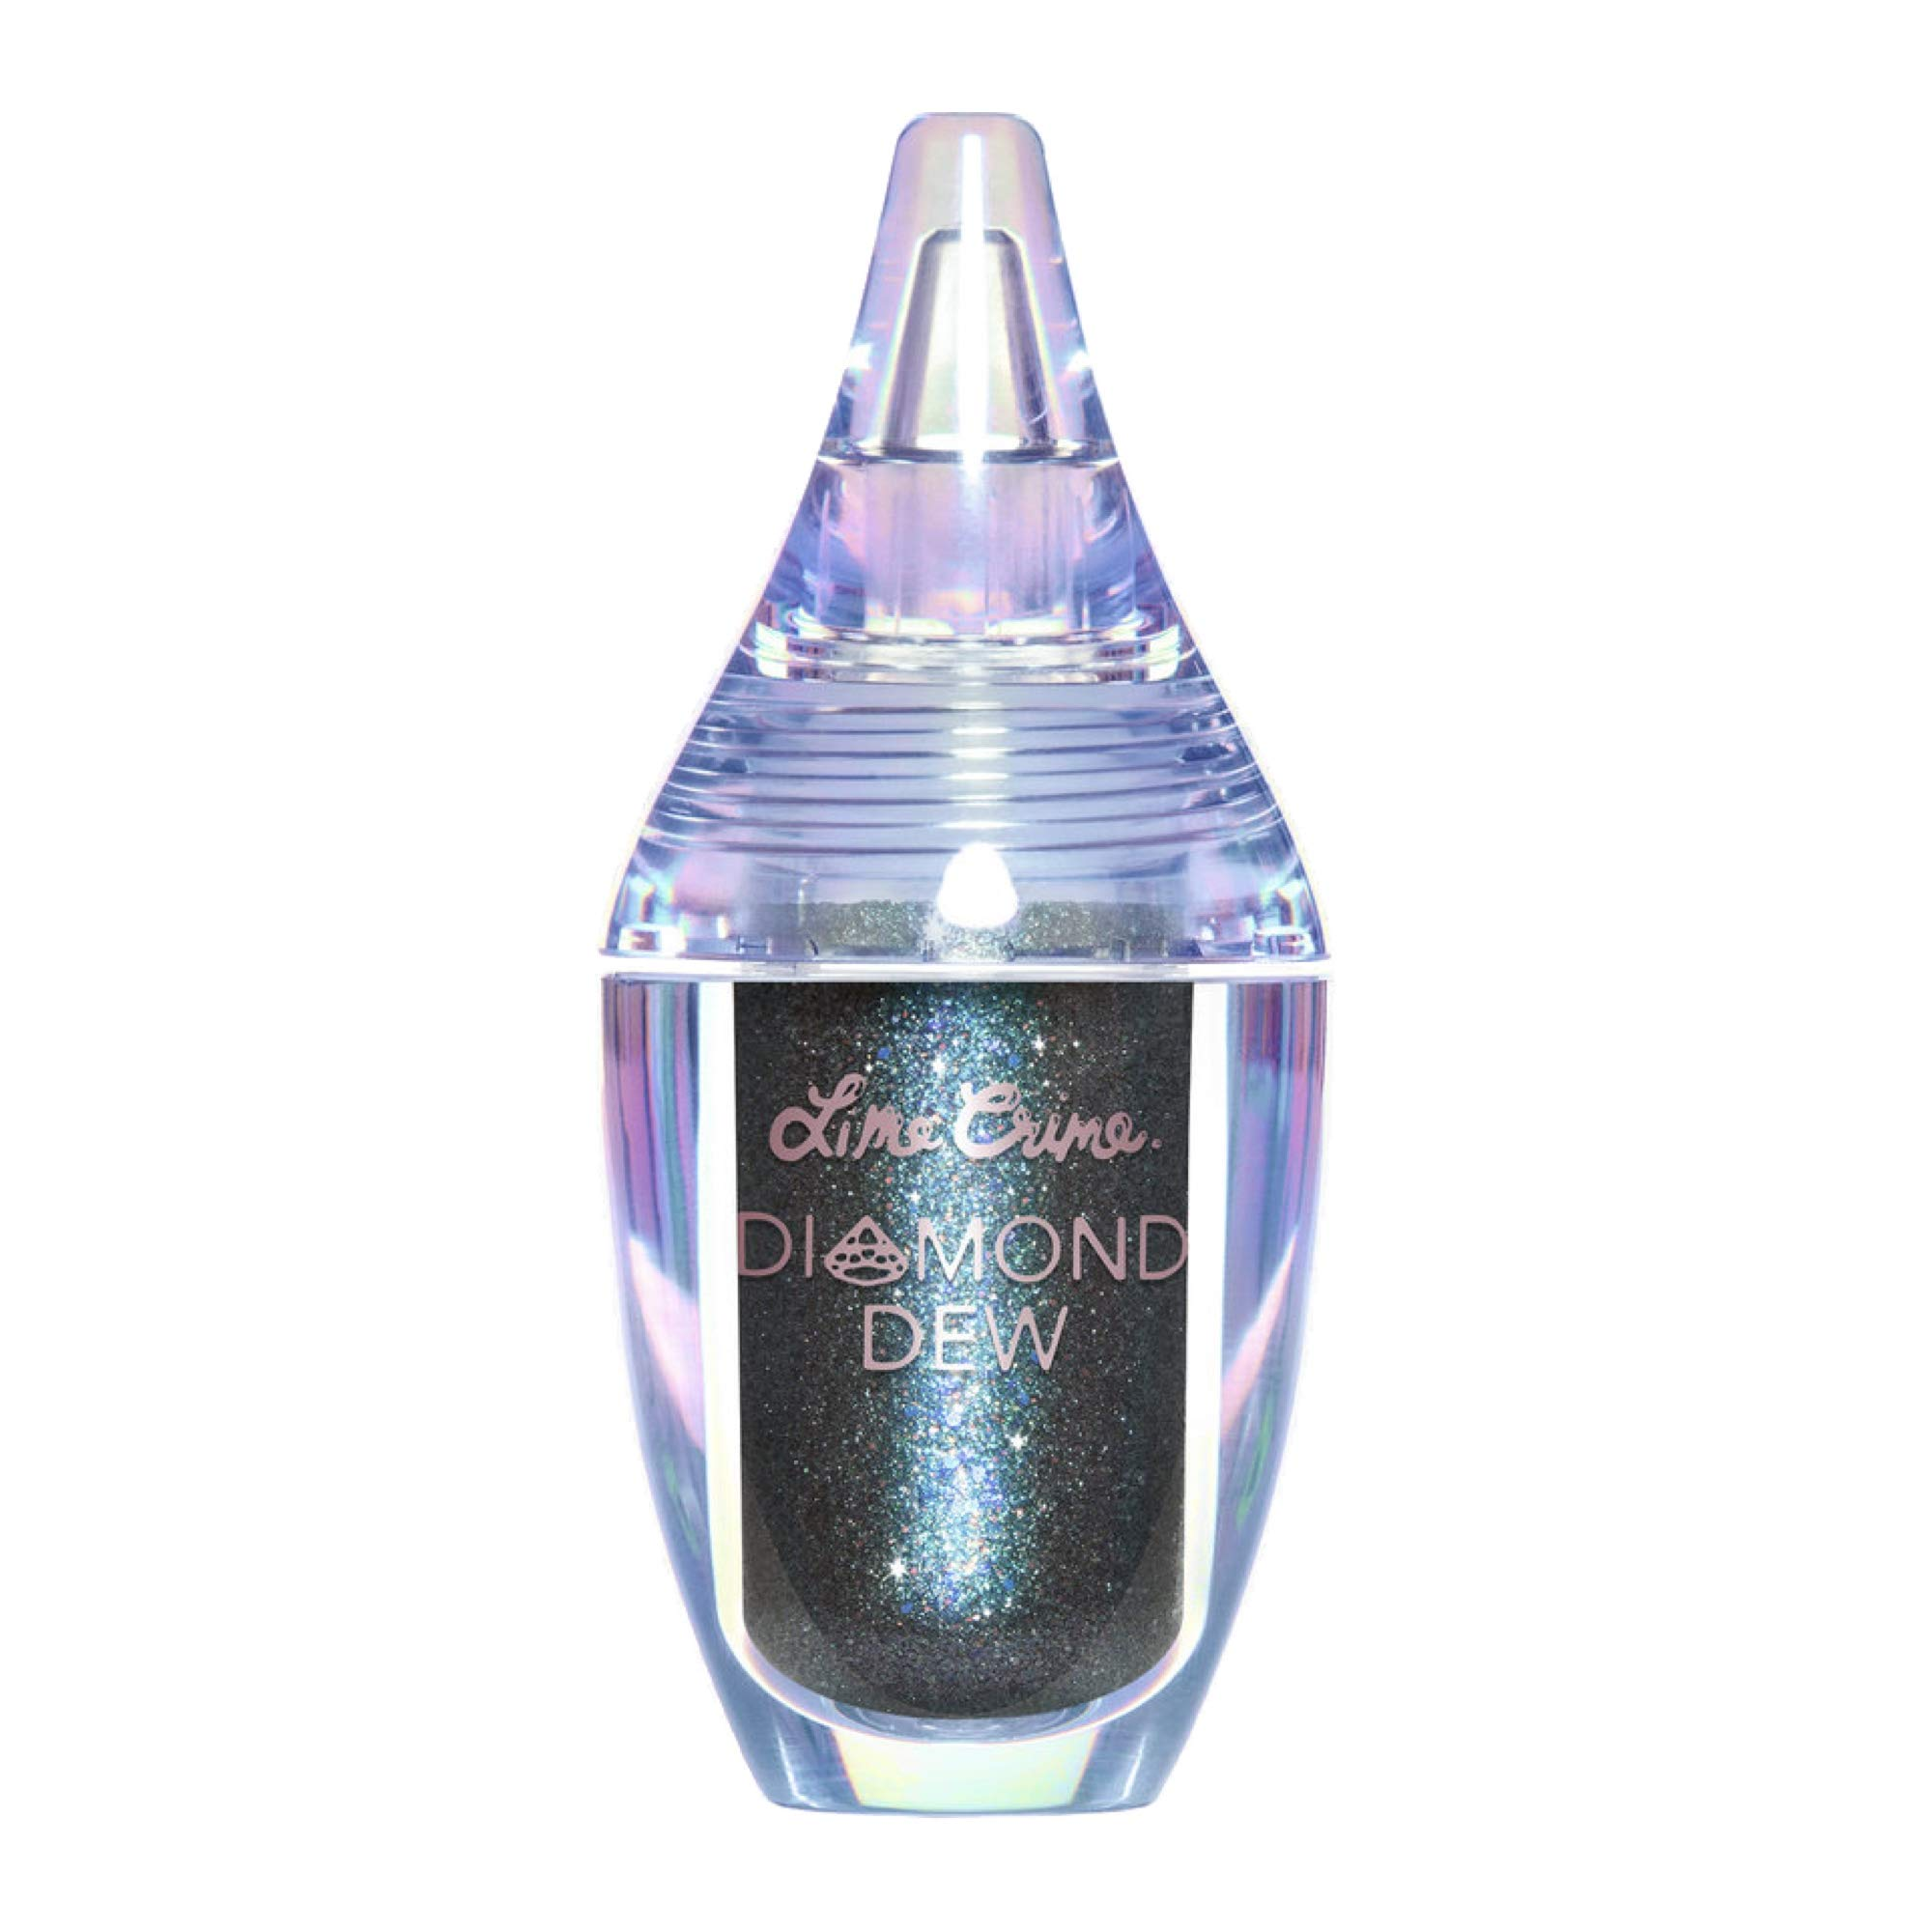 Lime Crime Diamond Dew Glitter Eyeshadow, Dragon - Iridescent Teal-Copper-Blue Lid Topper - Reflective Sparkle Shadow for Lids, Cheeks & Body - Won't Smudge or Crease - Vegan - 0.14 fl oz